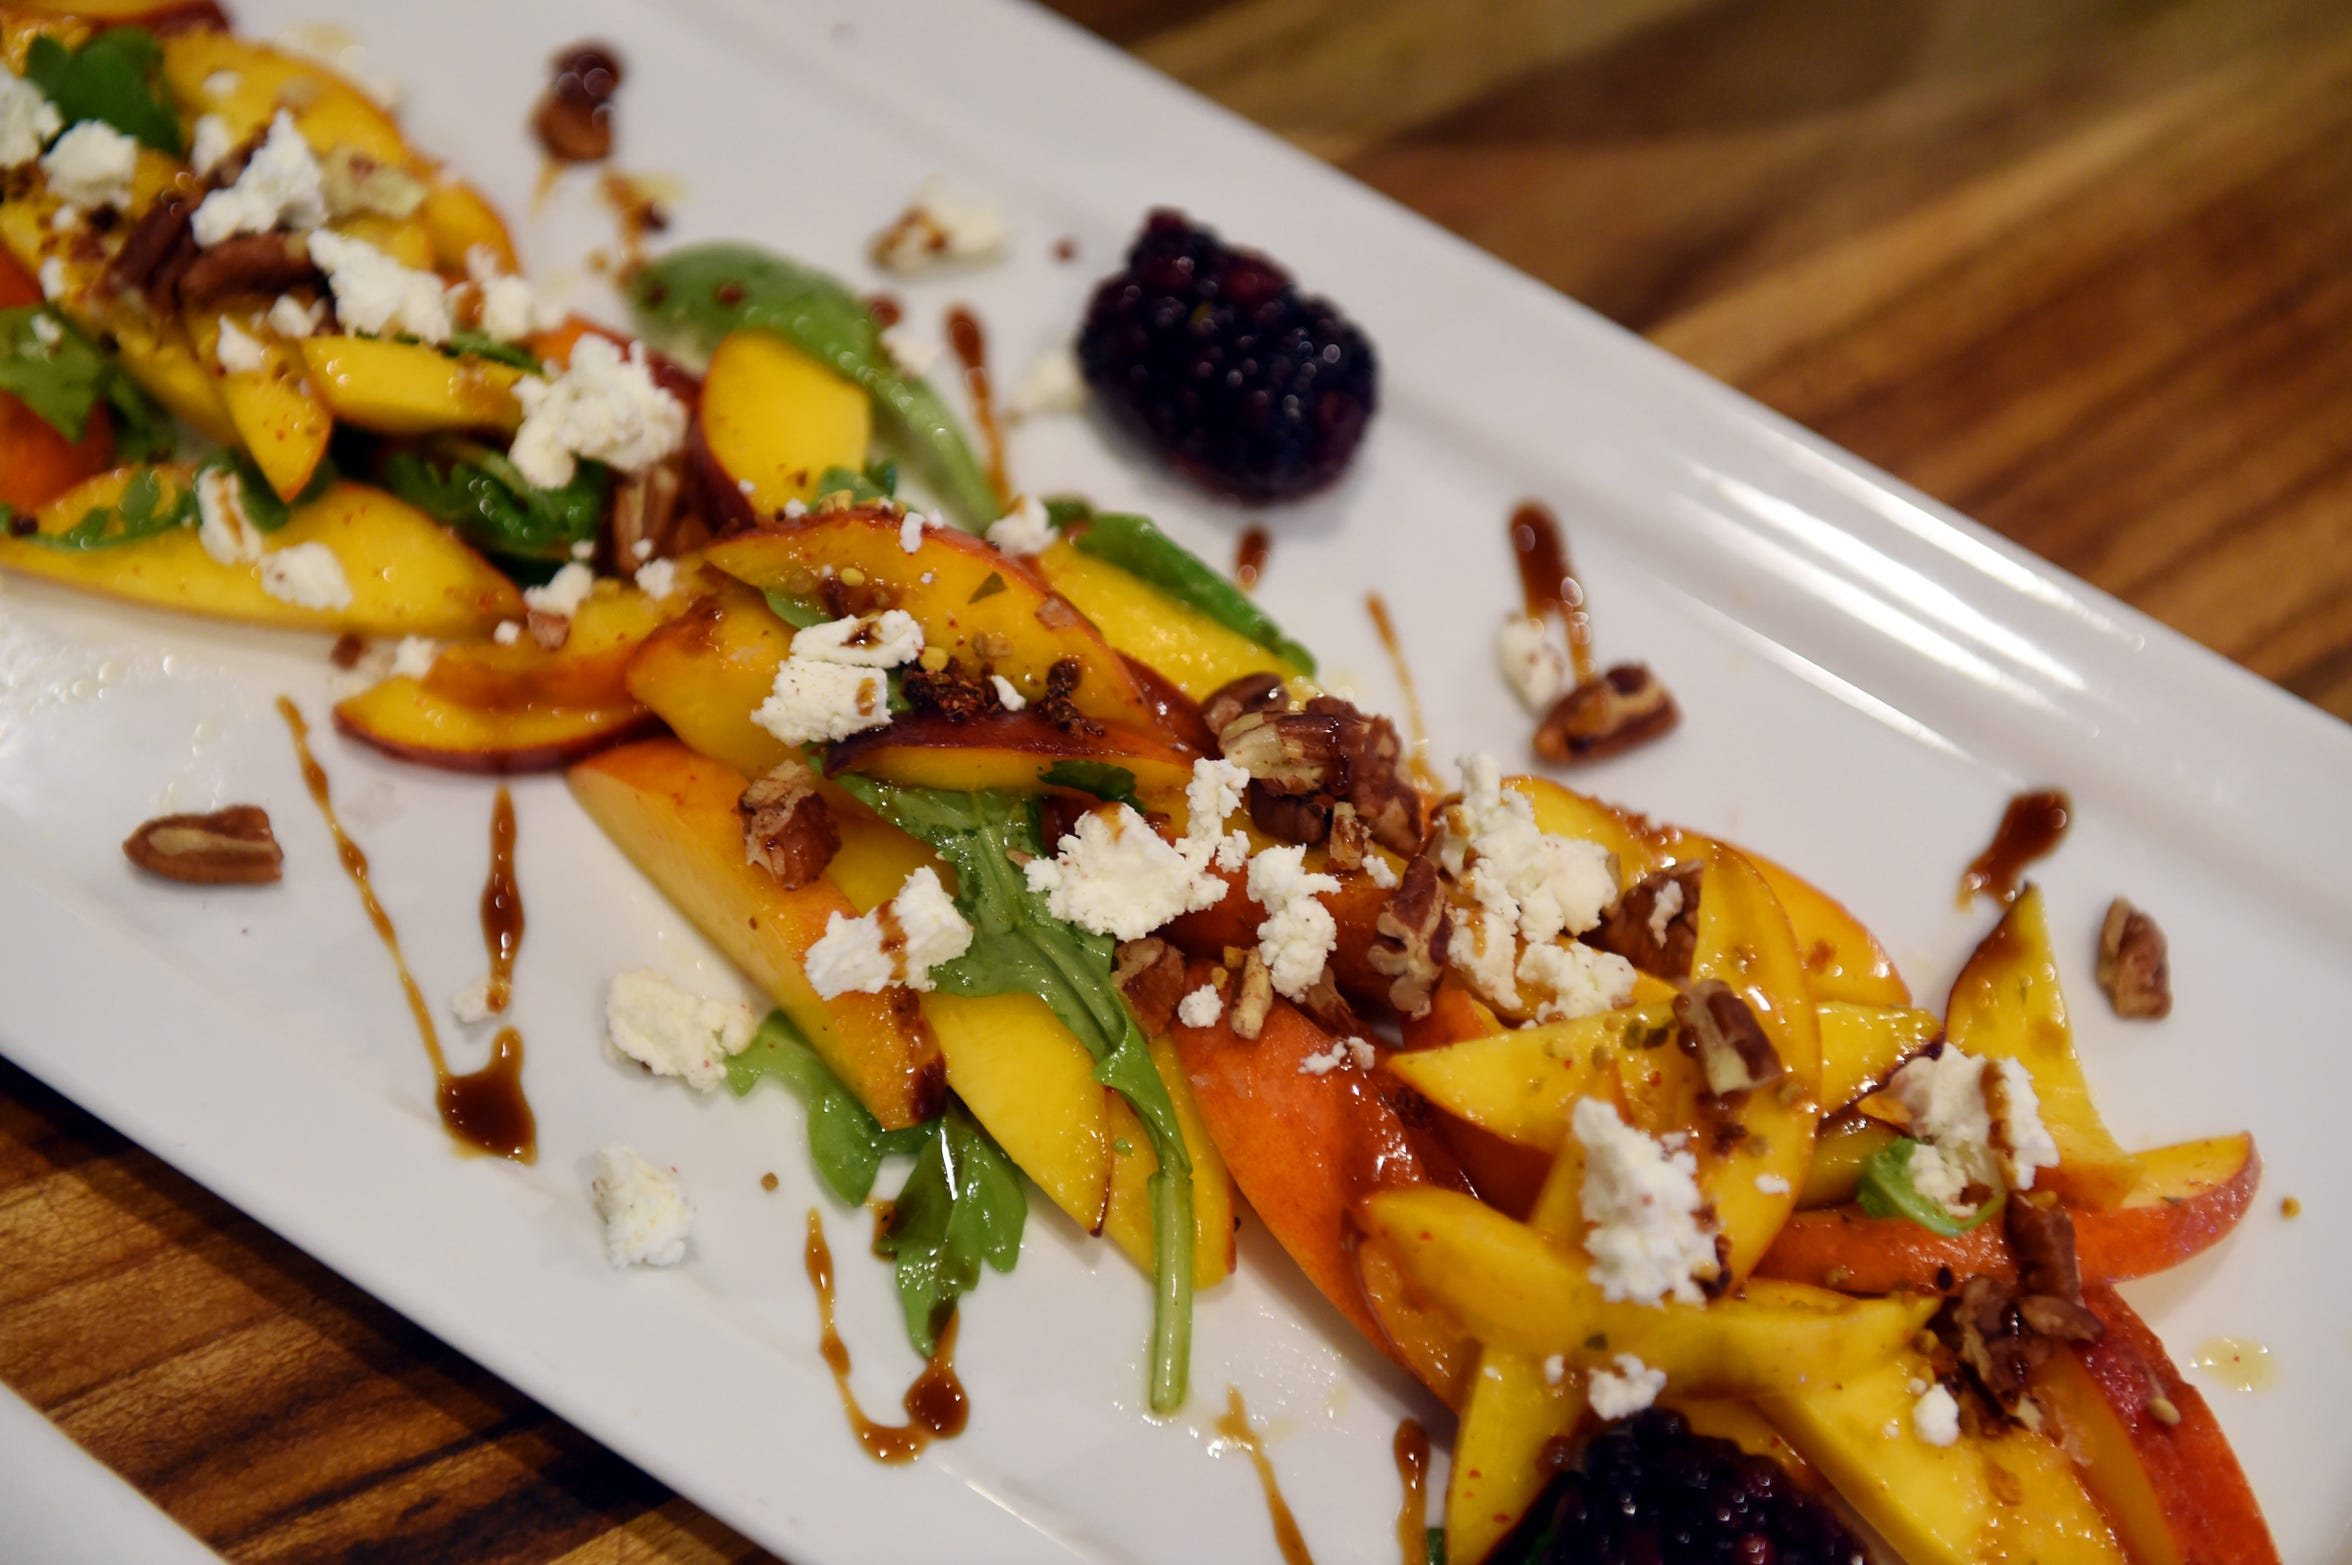 The Georgia peach salad consisting of chevre, arugula, honey vinaigrette, pecans, pink peppercorn pomegranate molasses, pickled blackberry and bee pollen at District Table & Bar in Port Salerno.